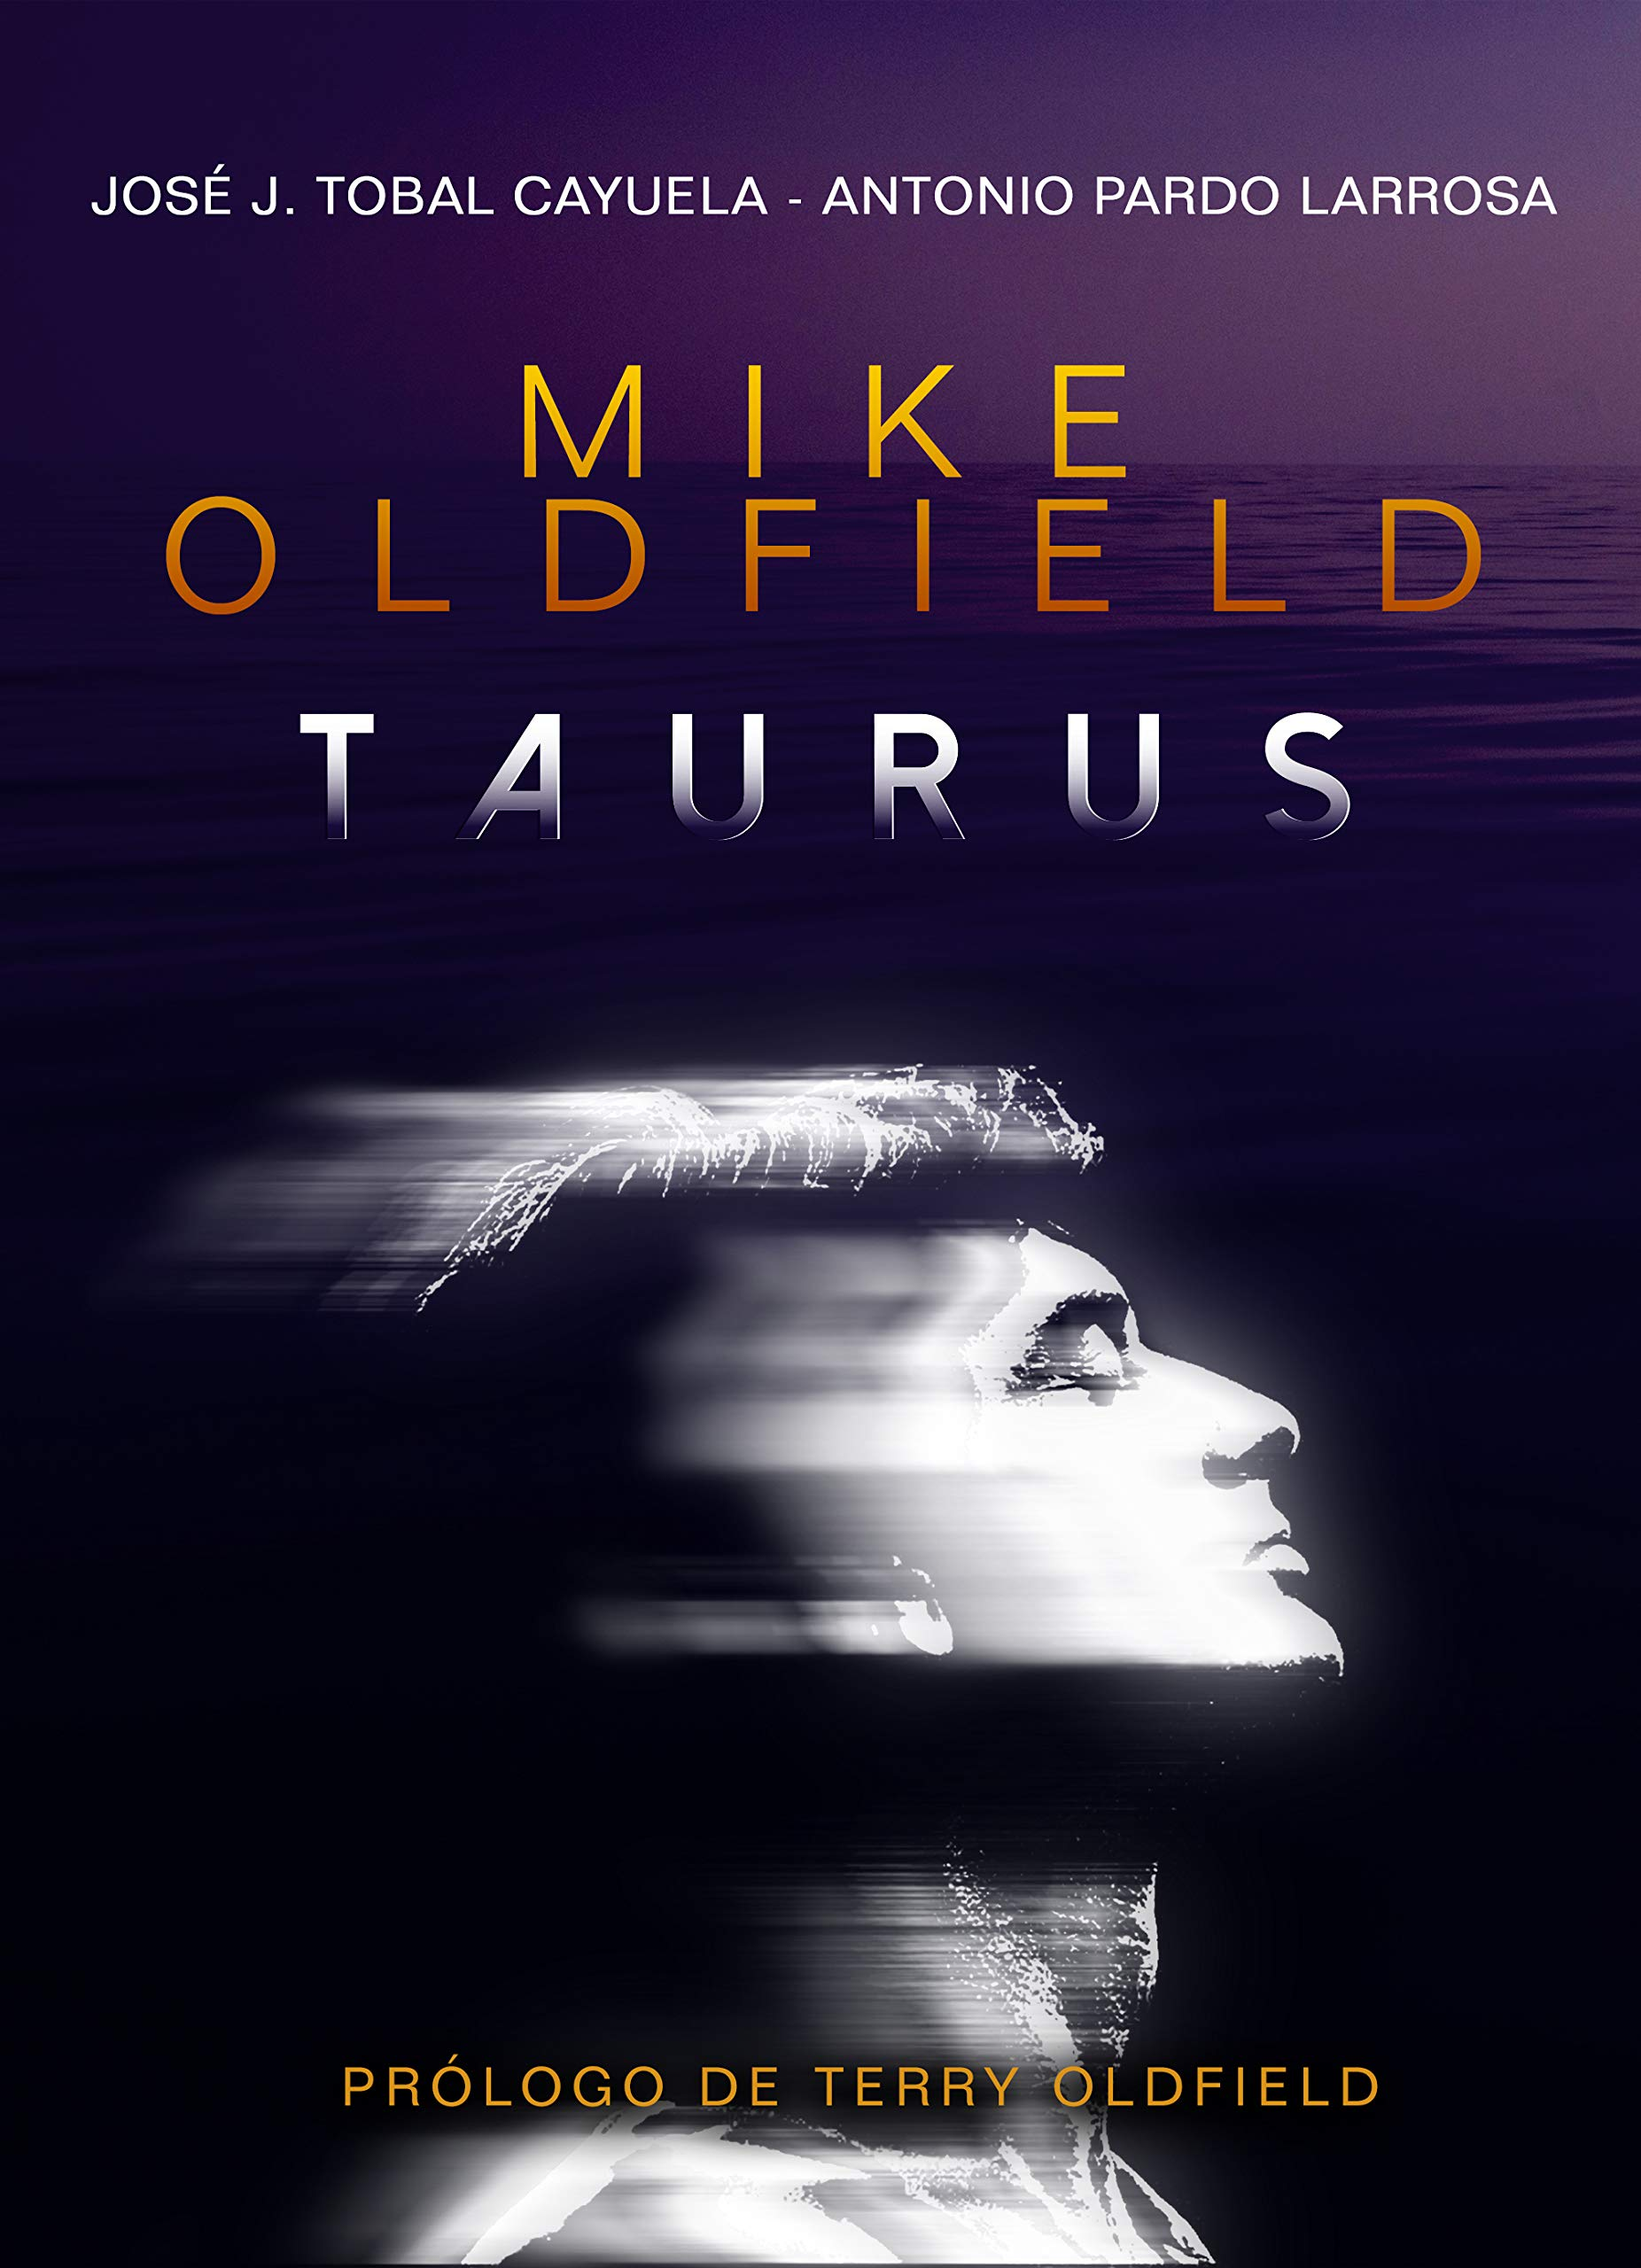 biografia de mike oldfield en español